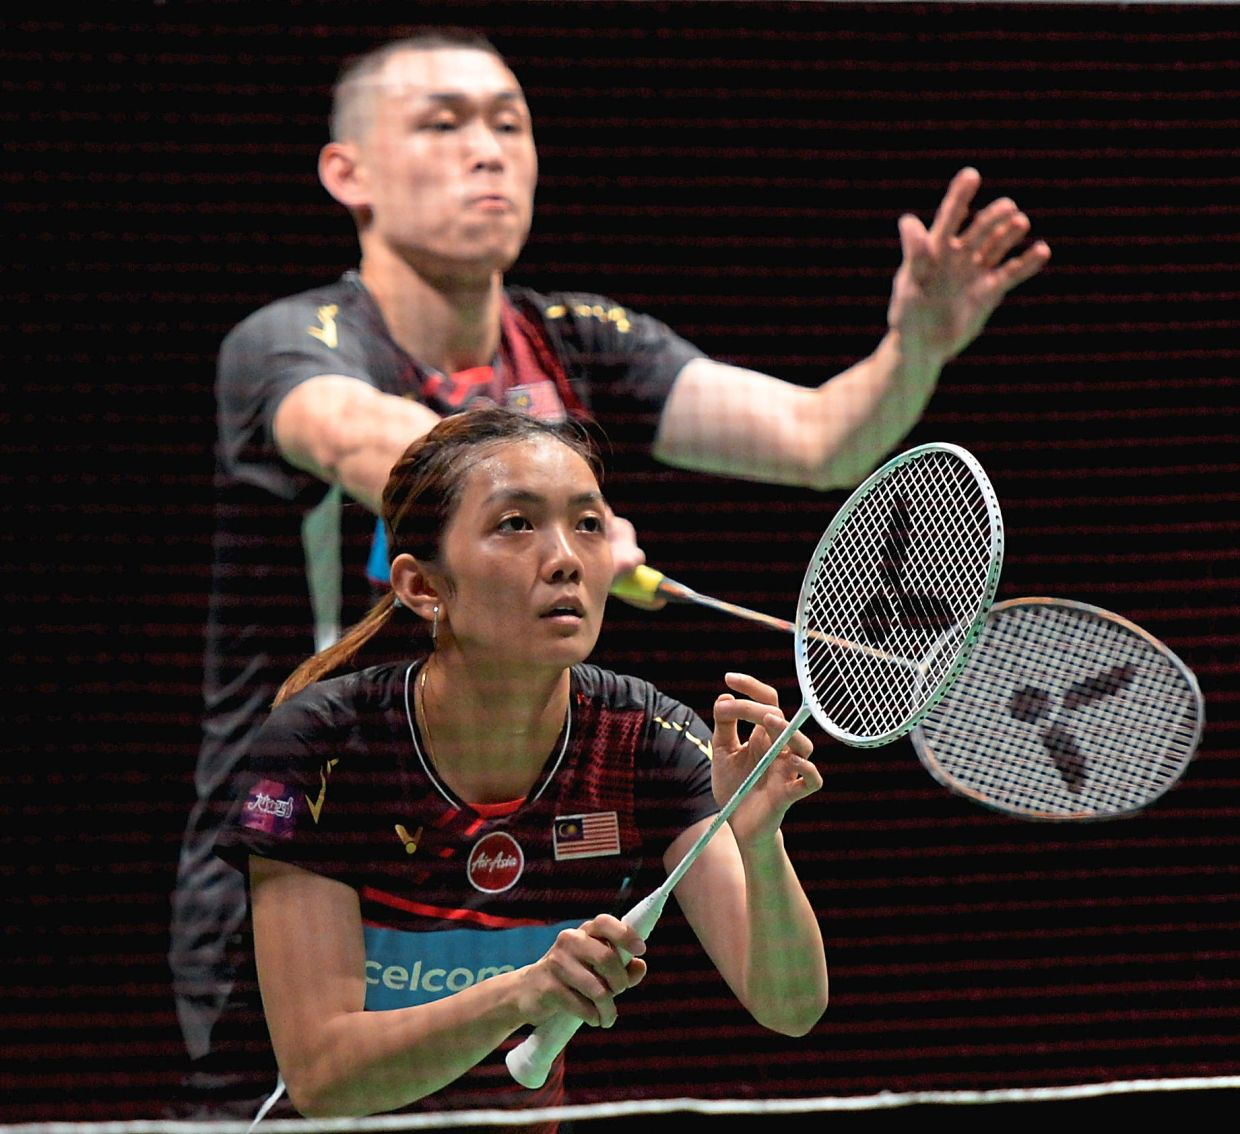 Badminton: Shuttlers get resourceful before centralised training resumes